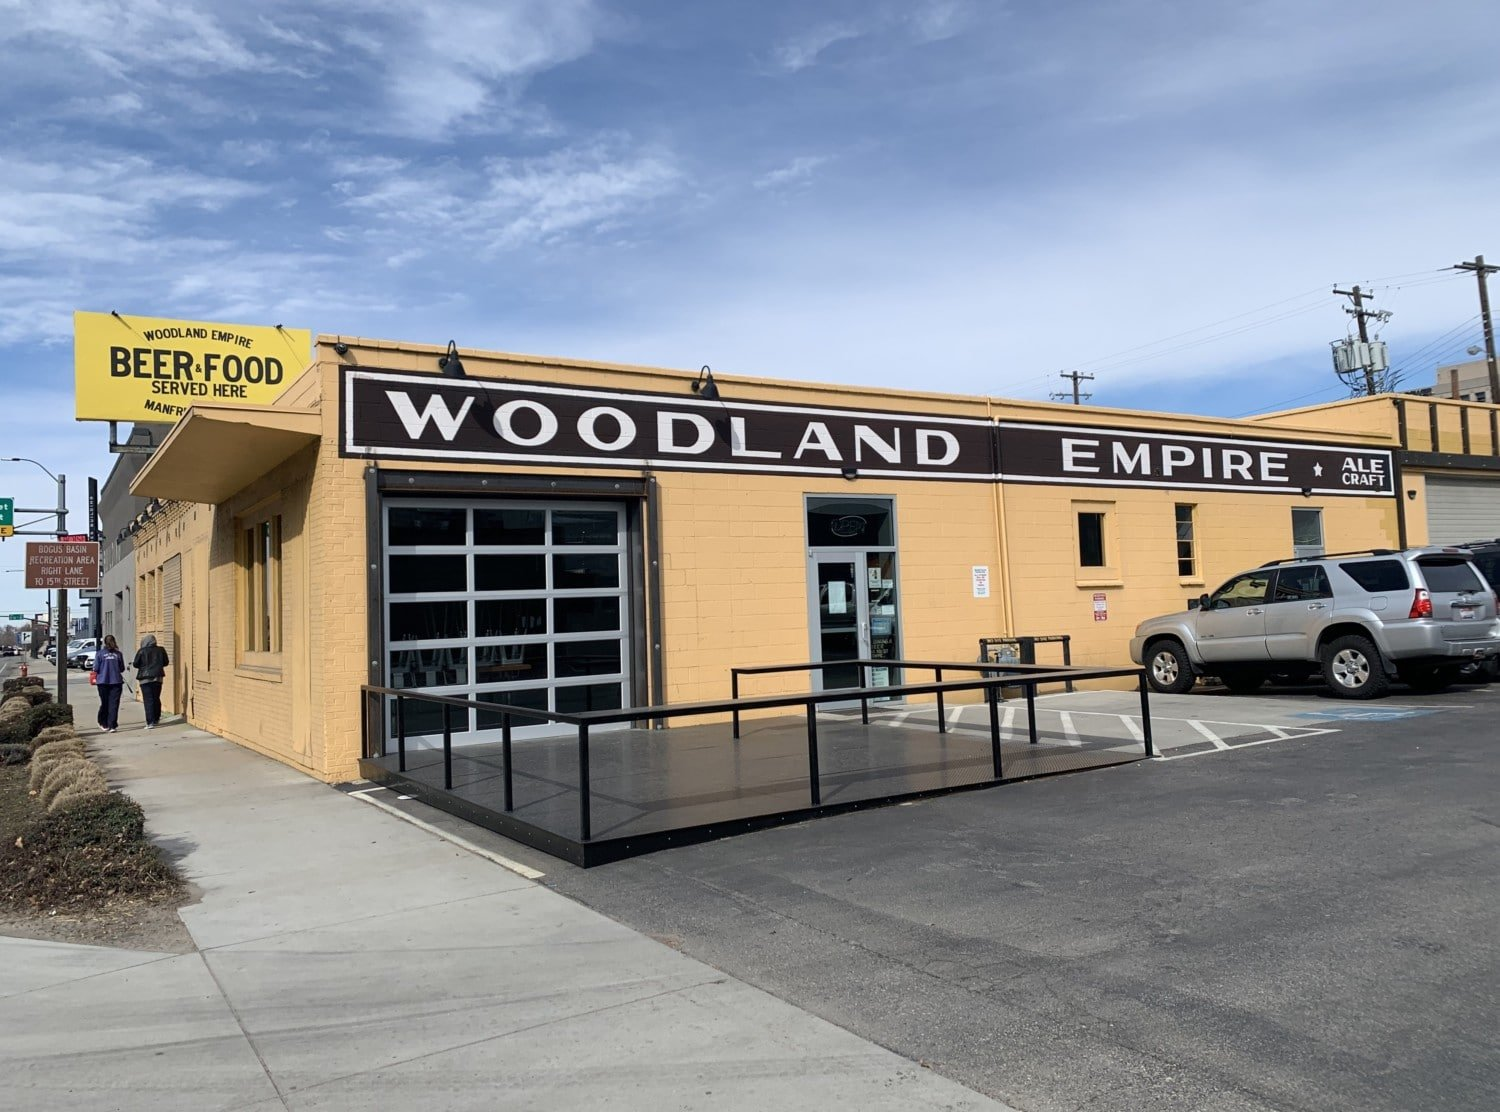 Woodland Empire Ale Craft to covert part of taproom to bottle shop